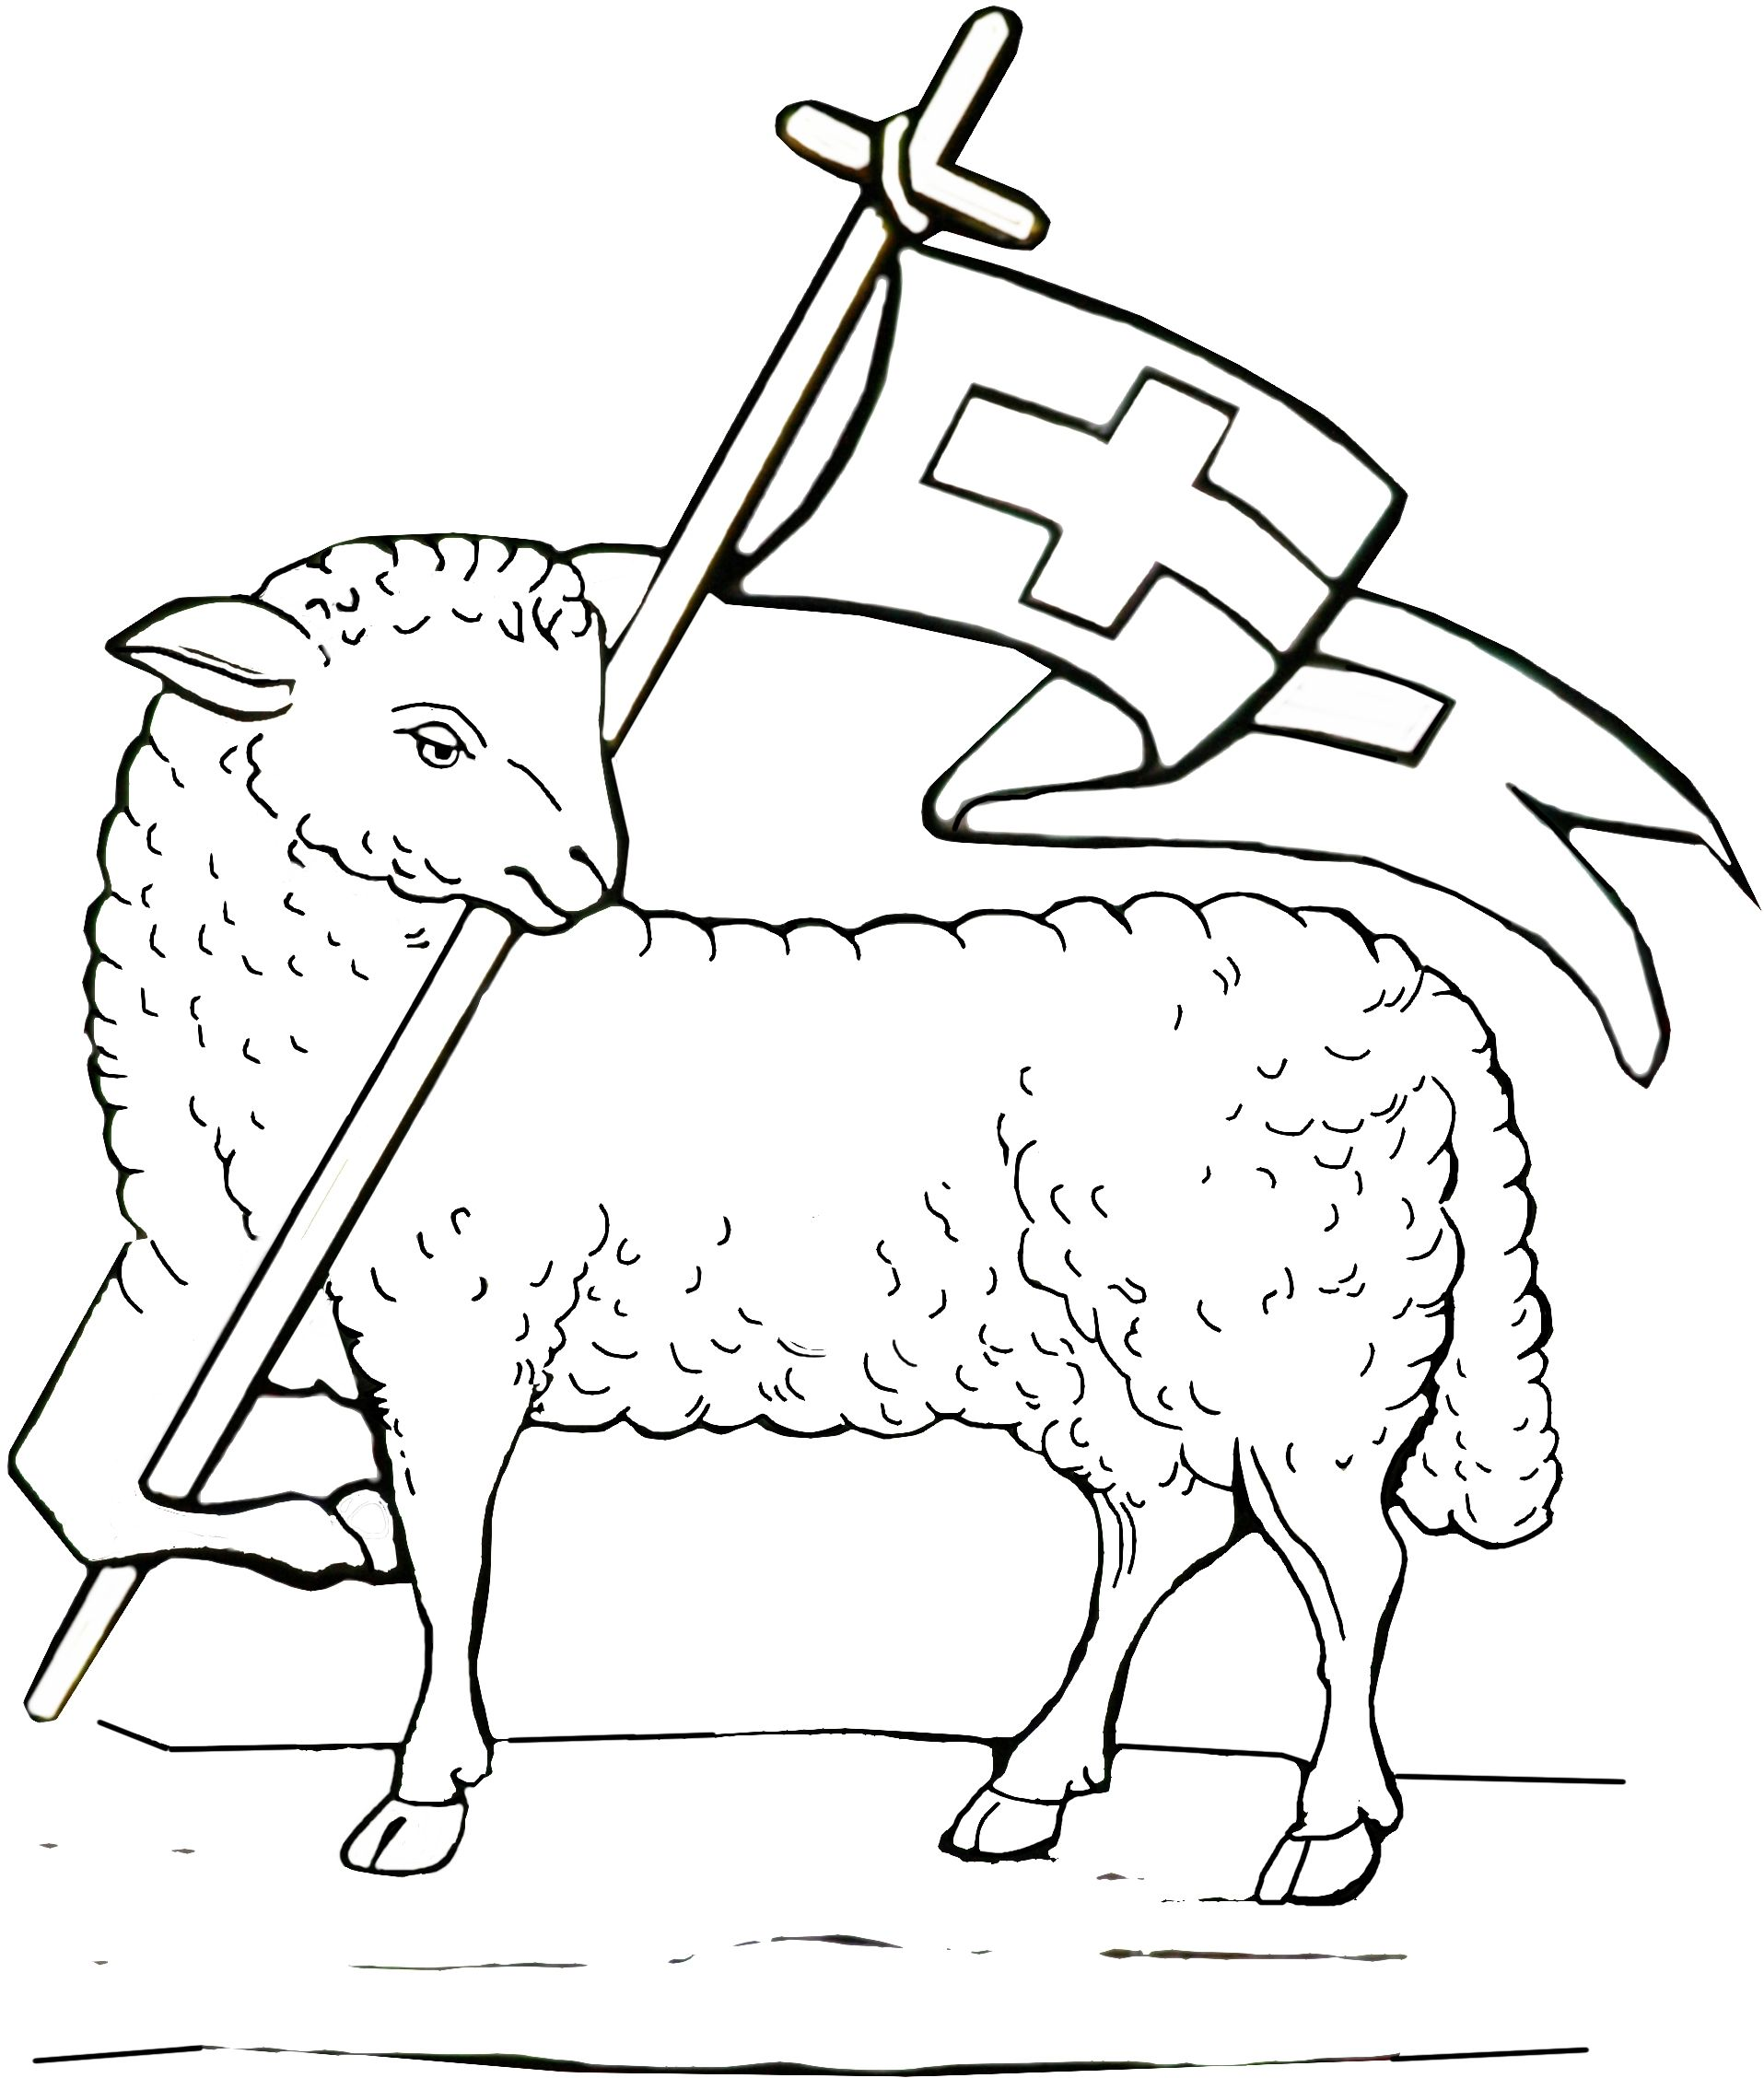 Pin On Line Drawings For Embroidery Crosses Christian Catholic